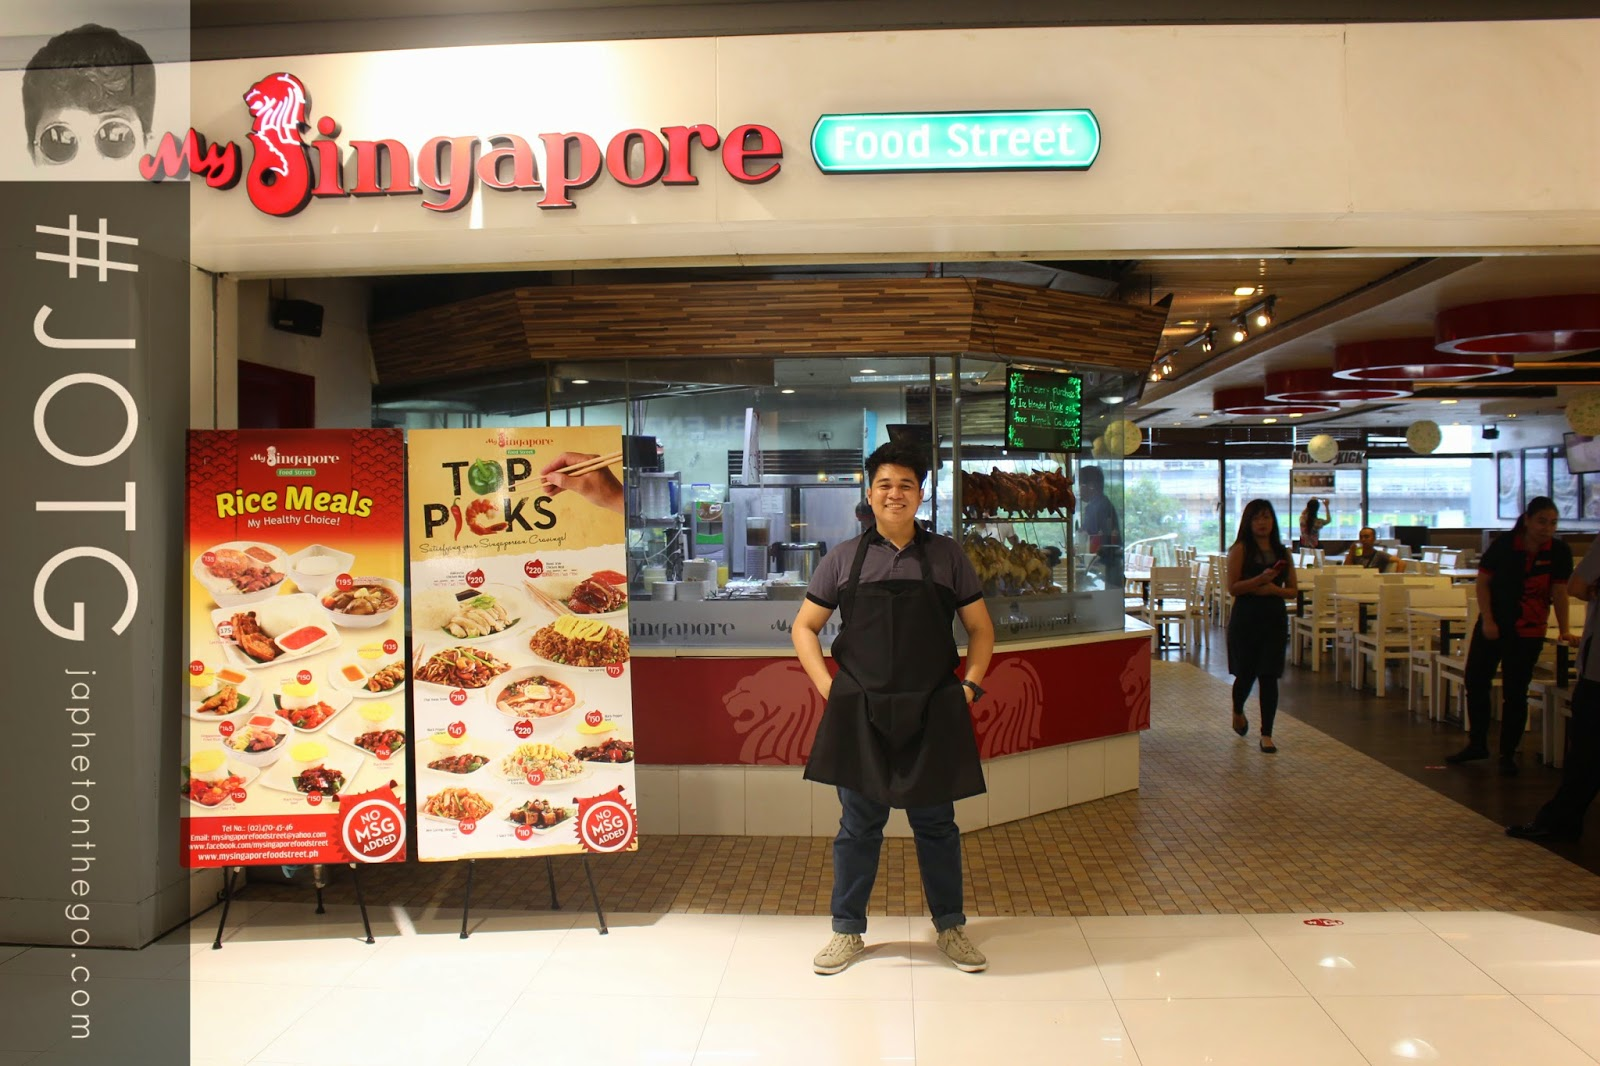 #JOTG: Conquered My Singapore Food Street